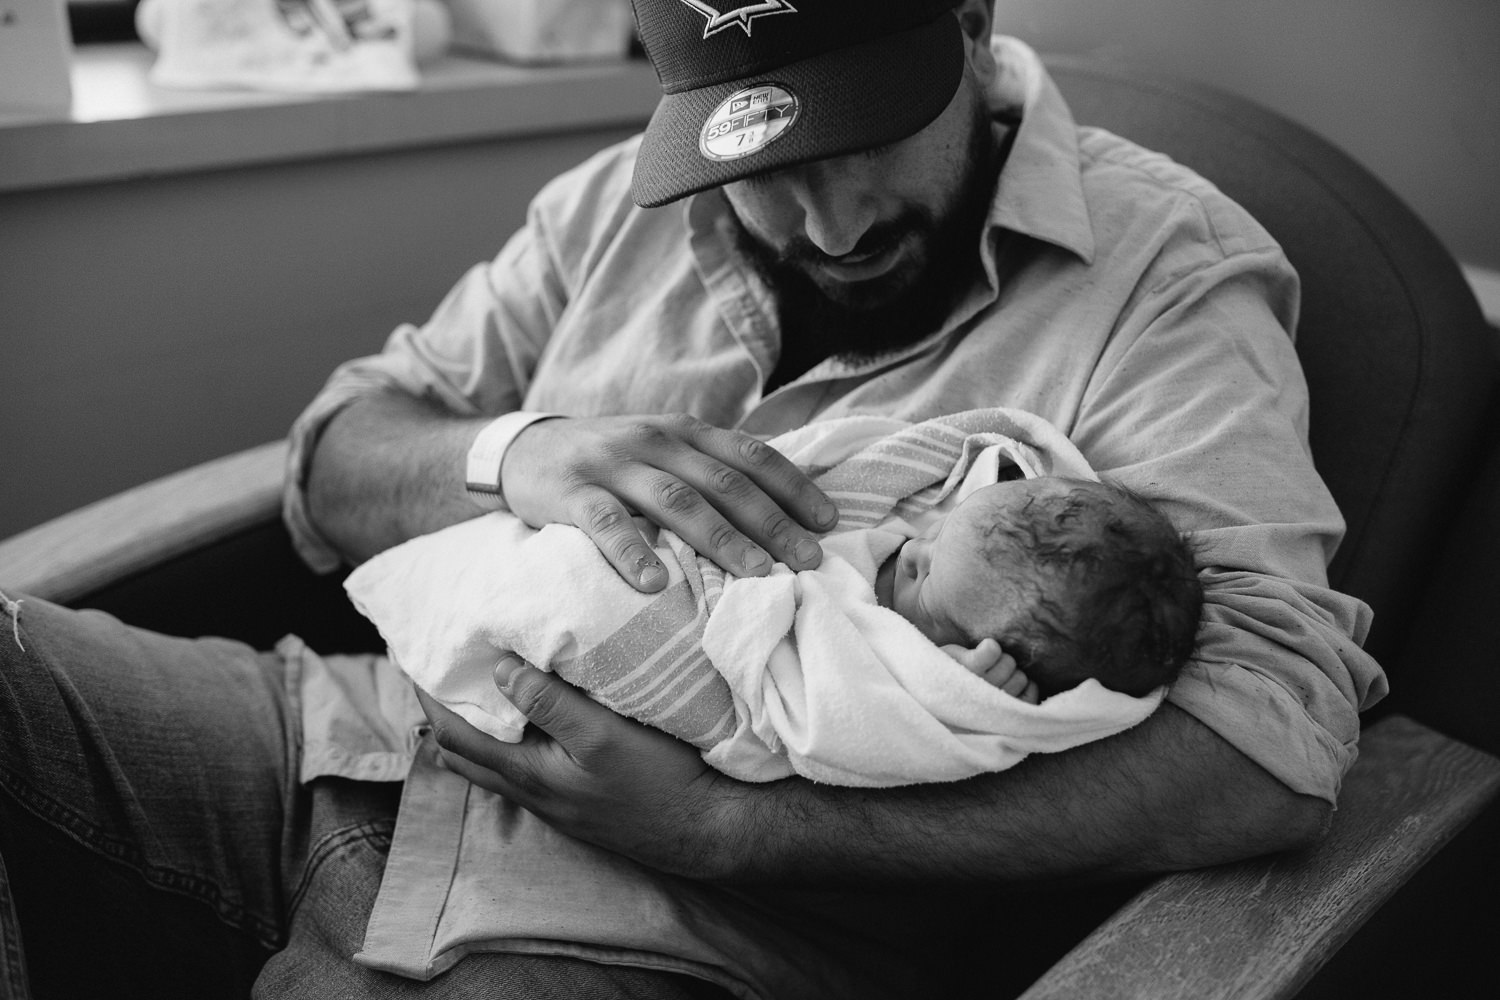 new dad sitting in hospital chair holding swaddled, sleeping 10 hour old baby boy - Newmarket In-Hospital Photography